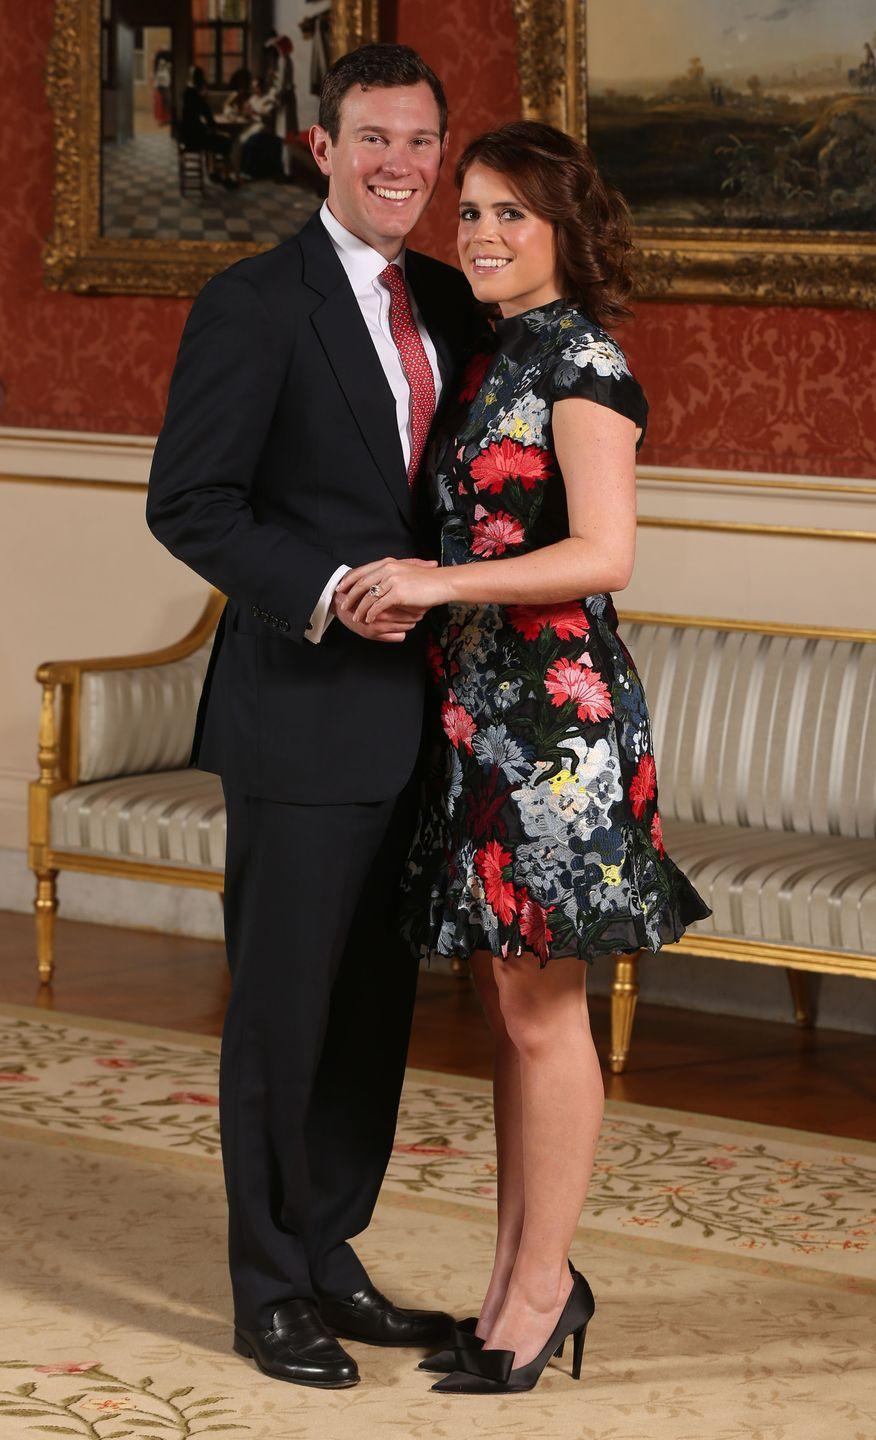 "<p>Princess Eugenie officially announced her engagement to Jack Brooksbank in January 2018, and their wedding followed later that year. But according to a <em><a href=""https://www.vanityfair.com/style/2018/09/princess-eugenie-wedding-engagement-delayed"" rel=""nofollow noopener"" target=""_blank"" data-ylk=""slk:Vanity Fair"" class=""link rapid-noclick-resp"">Vanity Fair</a></em> source, ""It's my understanding that Eugenie and Jack decided some time ago that they wanted to get married, and there was some talk about a wedding in 2017, but they had to wait for Harry to go first."" Basically, Prince Harry <a href=""https://www.harpersbazaar.com/celebrity/latest/a23384923/princess-eugenie-delayed-engagement/"" rel=""nofollow noopener"" target=""_blank"" data-ylk=""slk:outranked his cousin"" class=""link rapid-noclick-resp"">outranked his cousin</a>, so his engagement to Meghan Markle was announced first, and their wedding took place before Eugenie's.</p>"